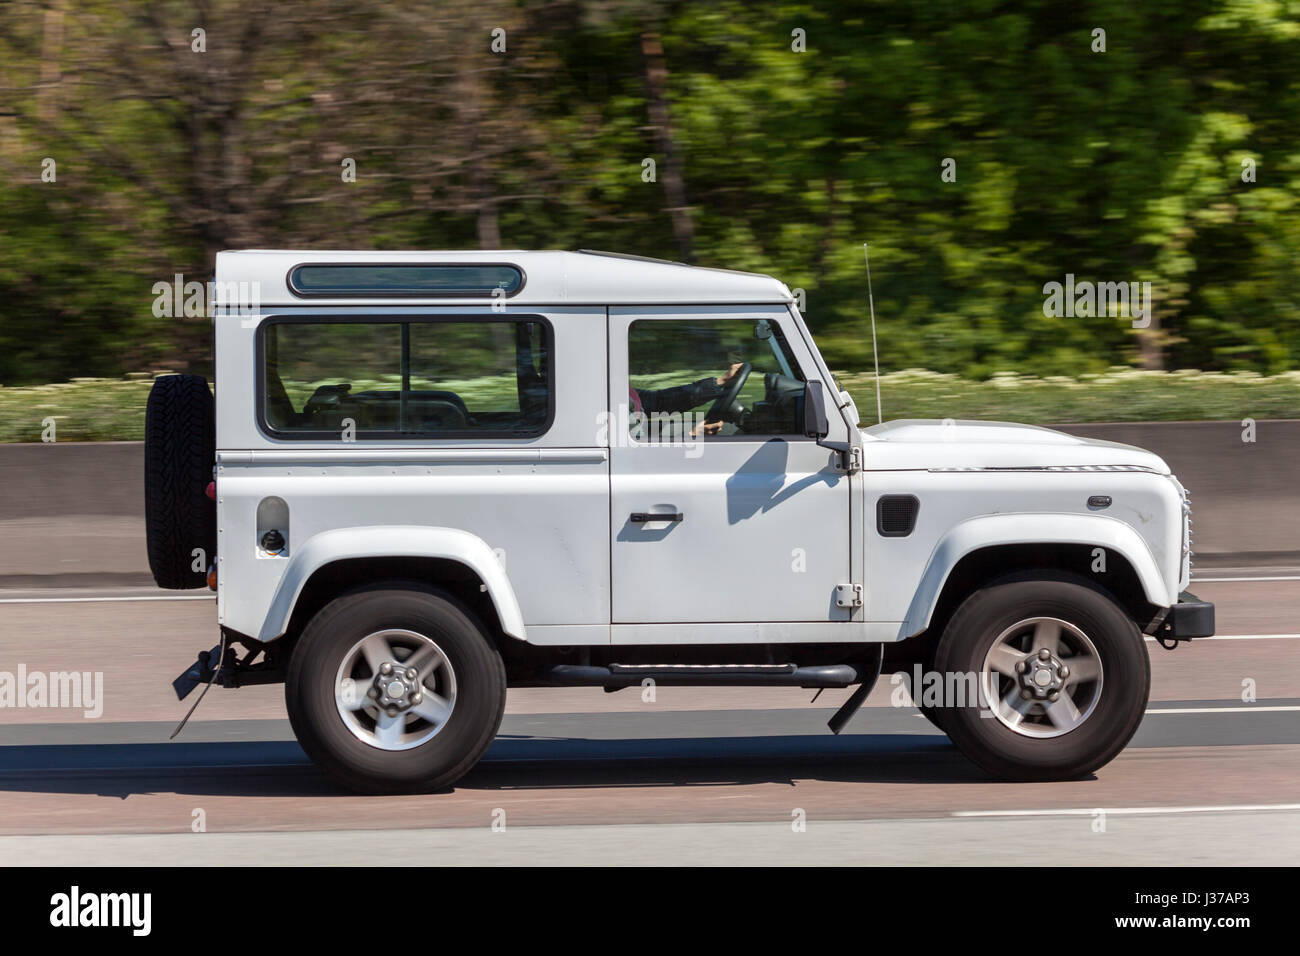 Frankfurt germany march 30 2017 land rover defender 90 driving on the